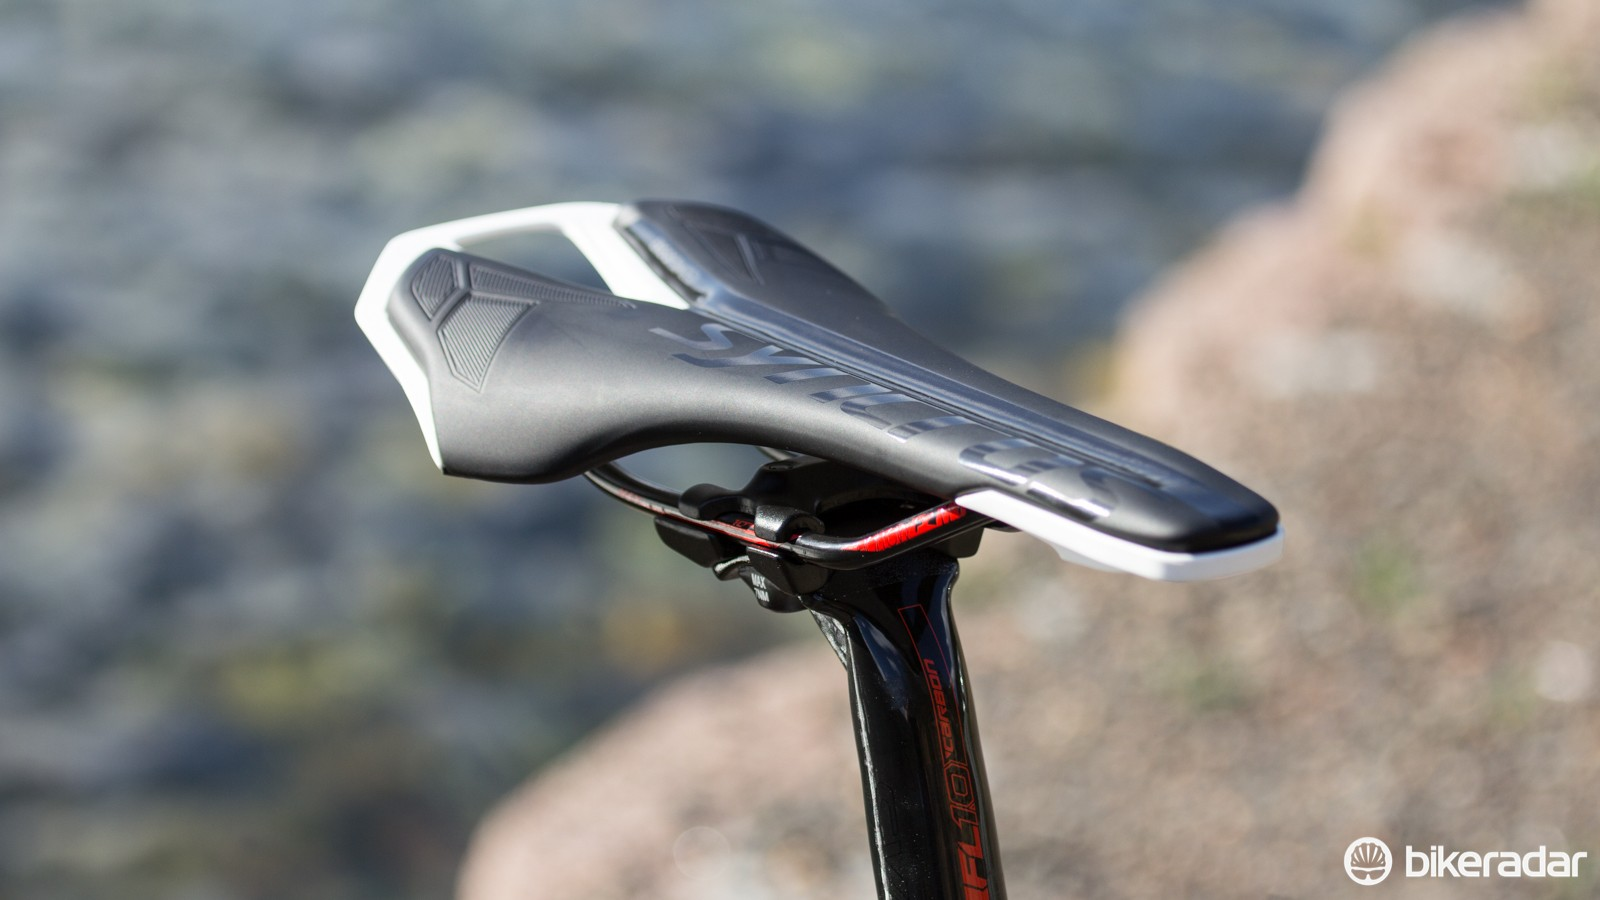 Our least favourite part of the Addict 20 is this Syncros saddle